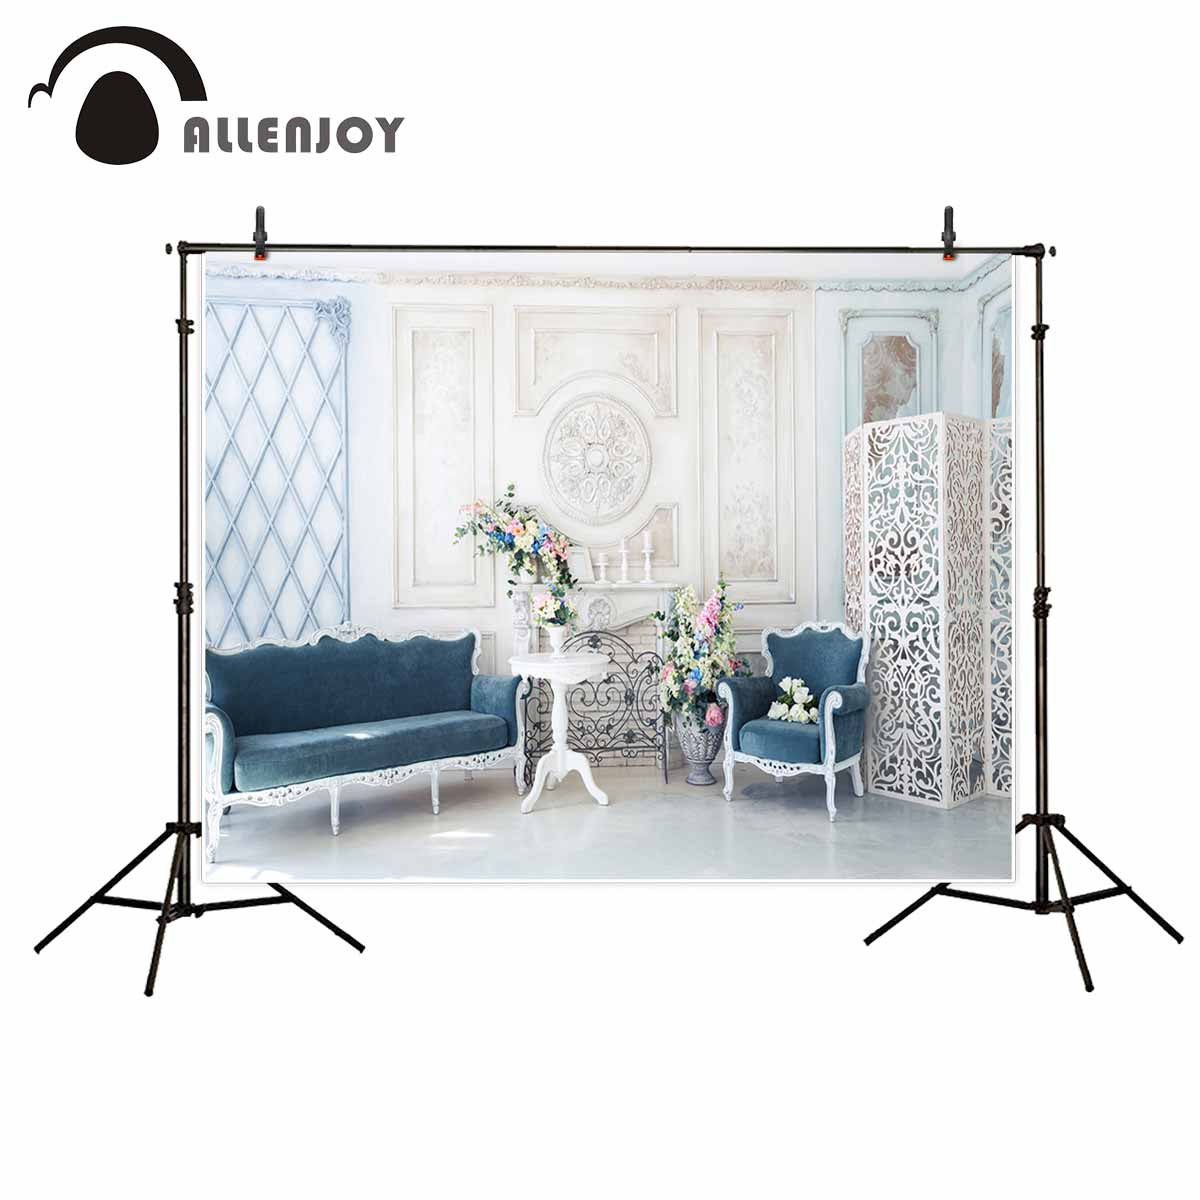 Audacious Allenjoy Elegant Indoor Sofa Flower Chair Furniture Backgrounds For Photo Studio For A Photo Shoot Professional Luxuriant In Design Consumer Electronics